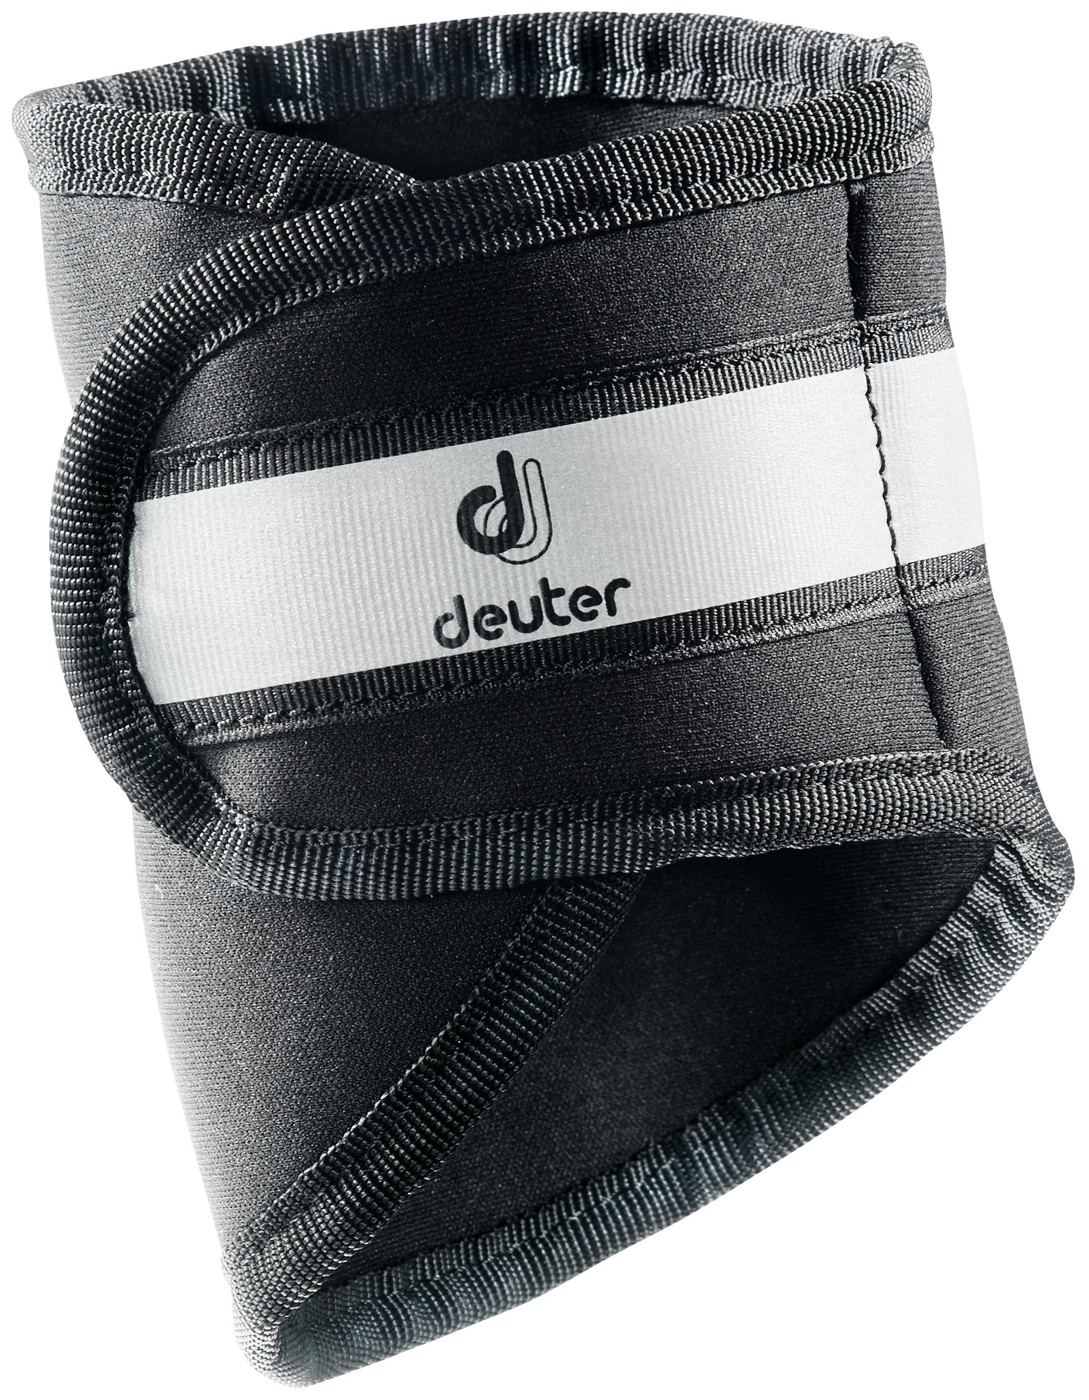 DEUTER Pants Protector Neoprene